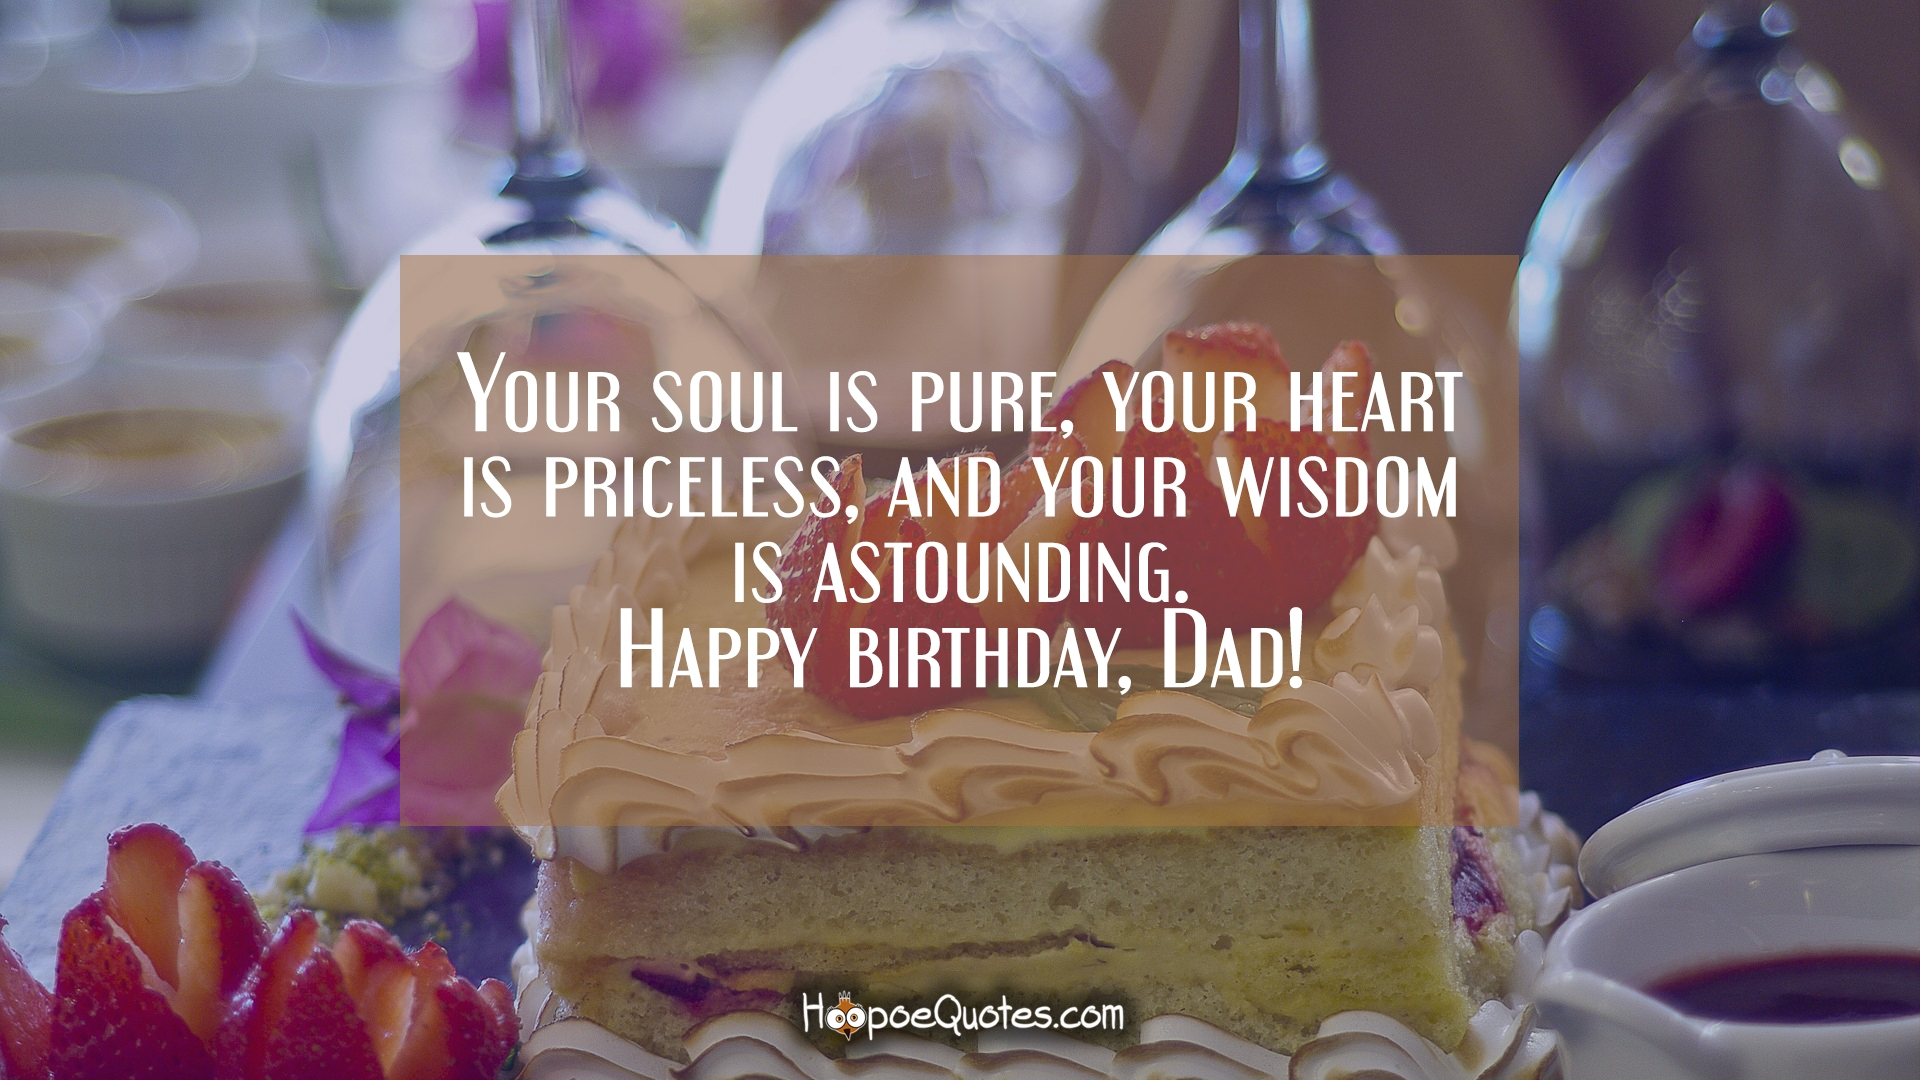 Your Soul Is Pure Your Heart Is Priceless And Your Wisdom Is